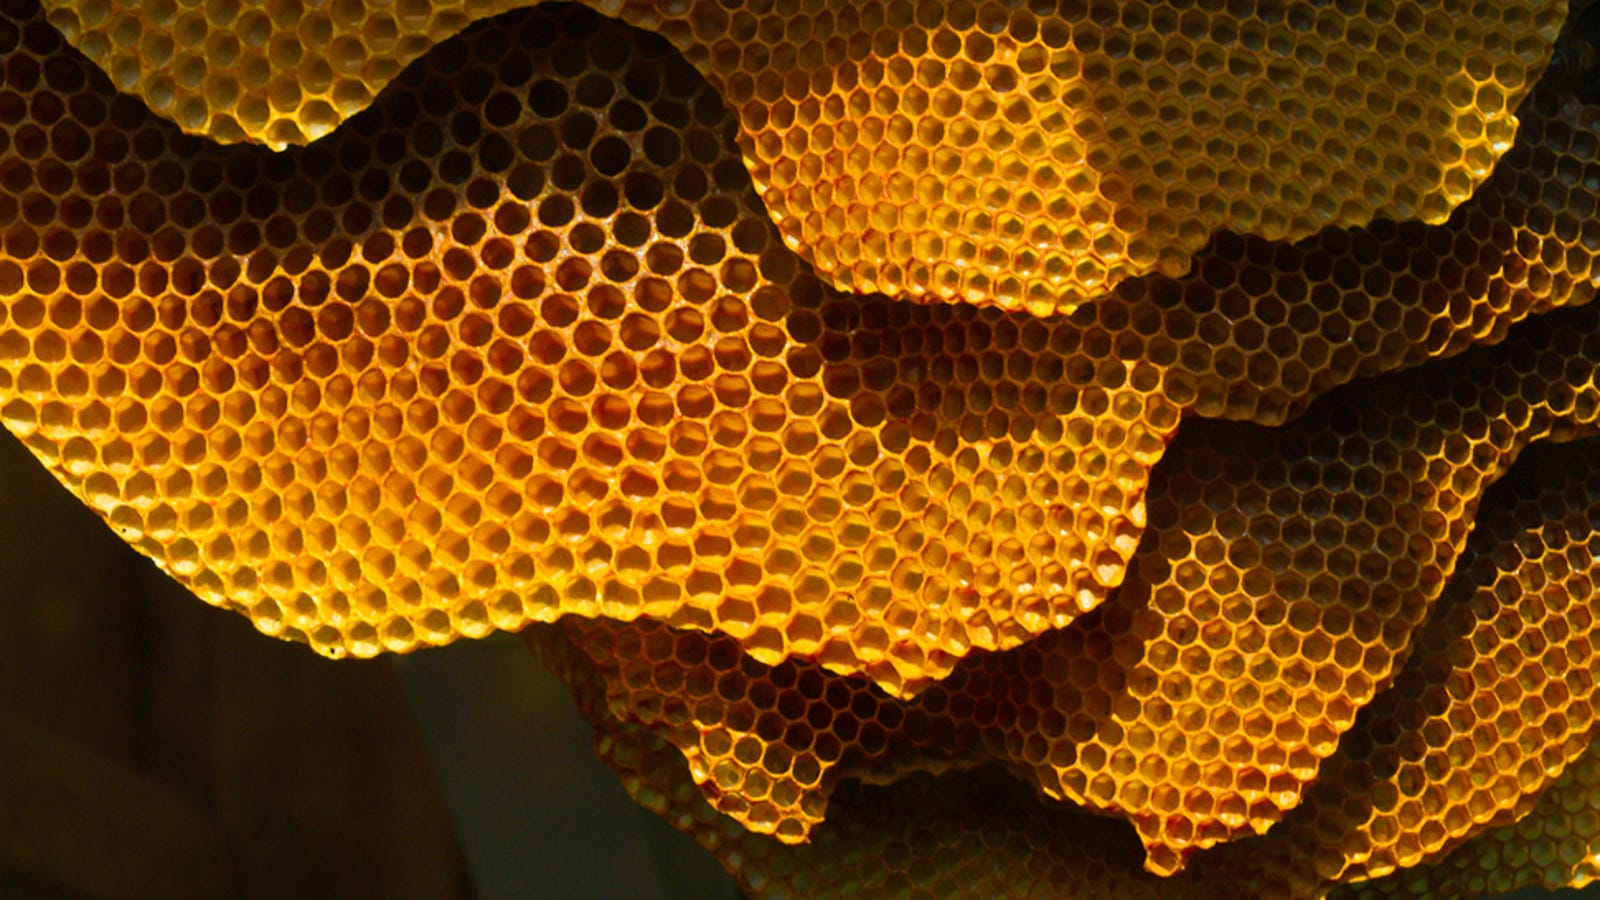 Why honey is the only food that doesn't go bad